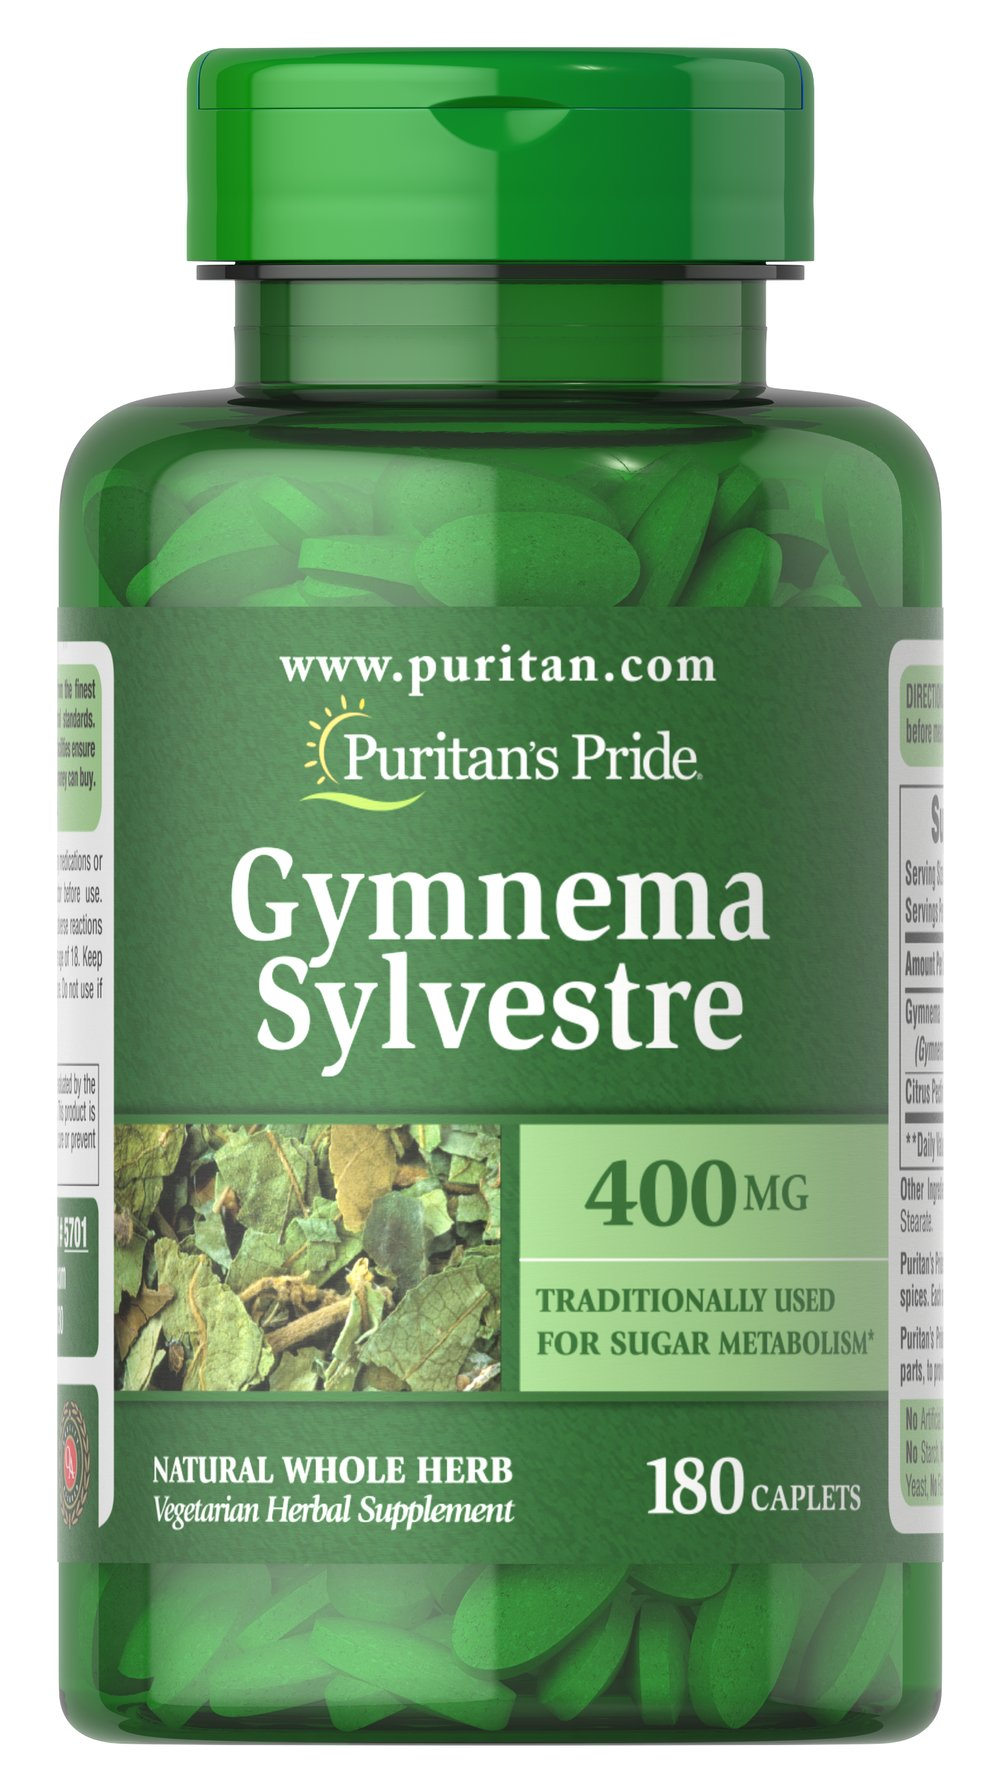 Gymnema Sylvestre 400 mg <p>Traditionally used for Sugar Metabolism**</p><p>Gymnema Sylvestre, an  ancient Ayurvedic herb, has been used in India for more than 2000 years  as a healthy and nutritious supplement. Gymnema Sylvestre supports  carbohydrate metabolism.** Available in (400 mg) tablets.</p><p>We only use the finest quality herbs and spices.  Each is screened and finely milled for quick release.</p><p>Puritan's Pride's Natural Whole Her